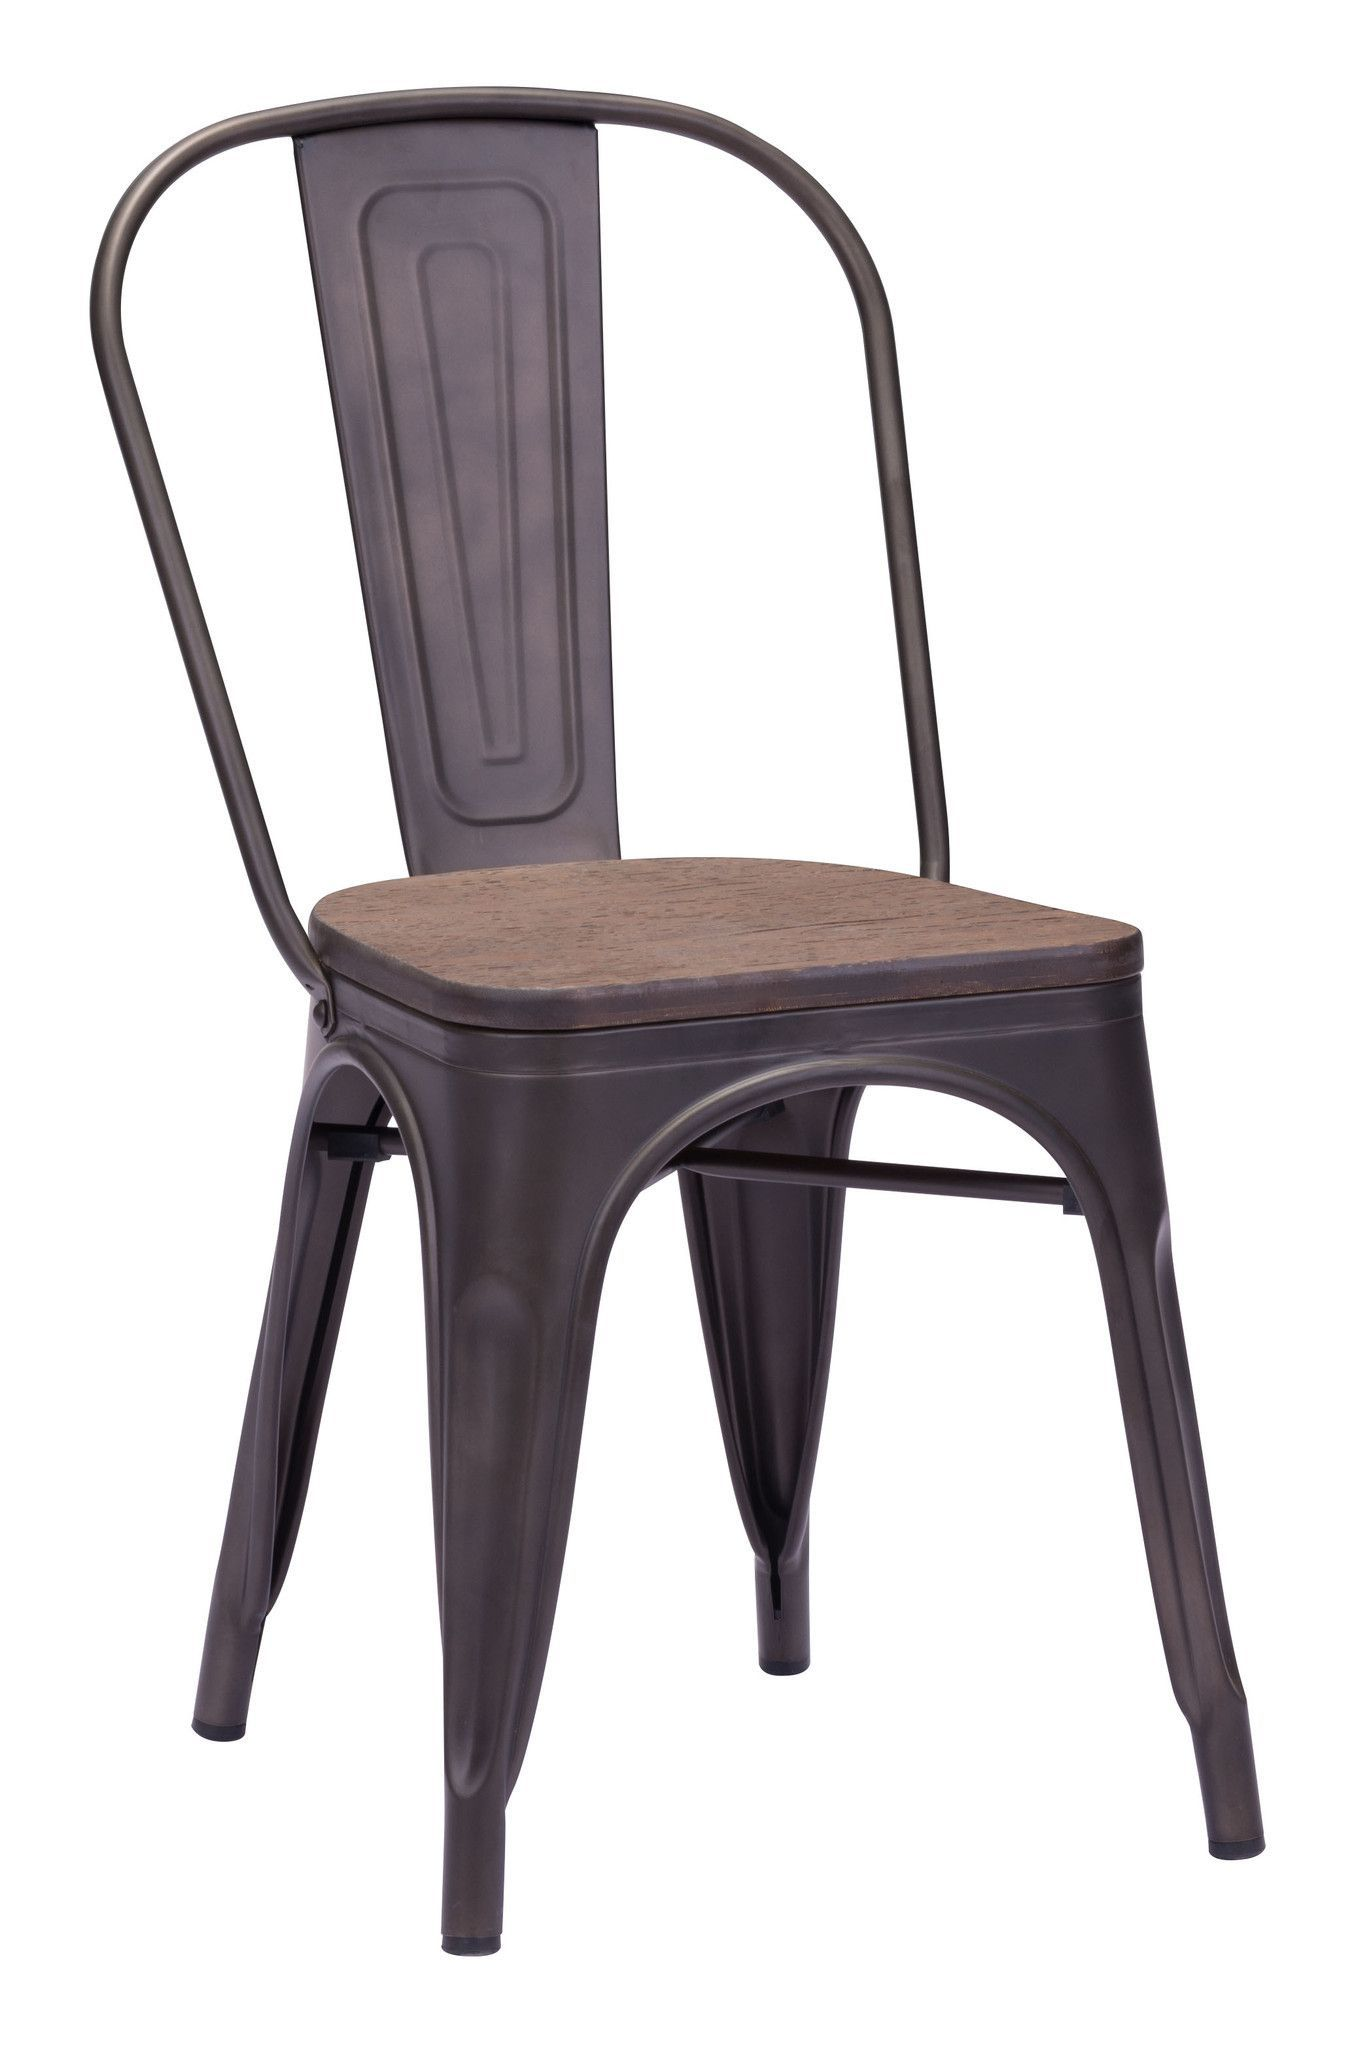 St. Charles Dining Chair | Rustic Wood